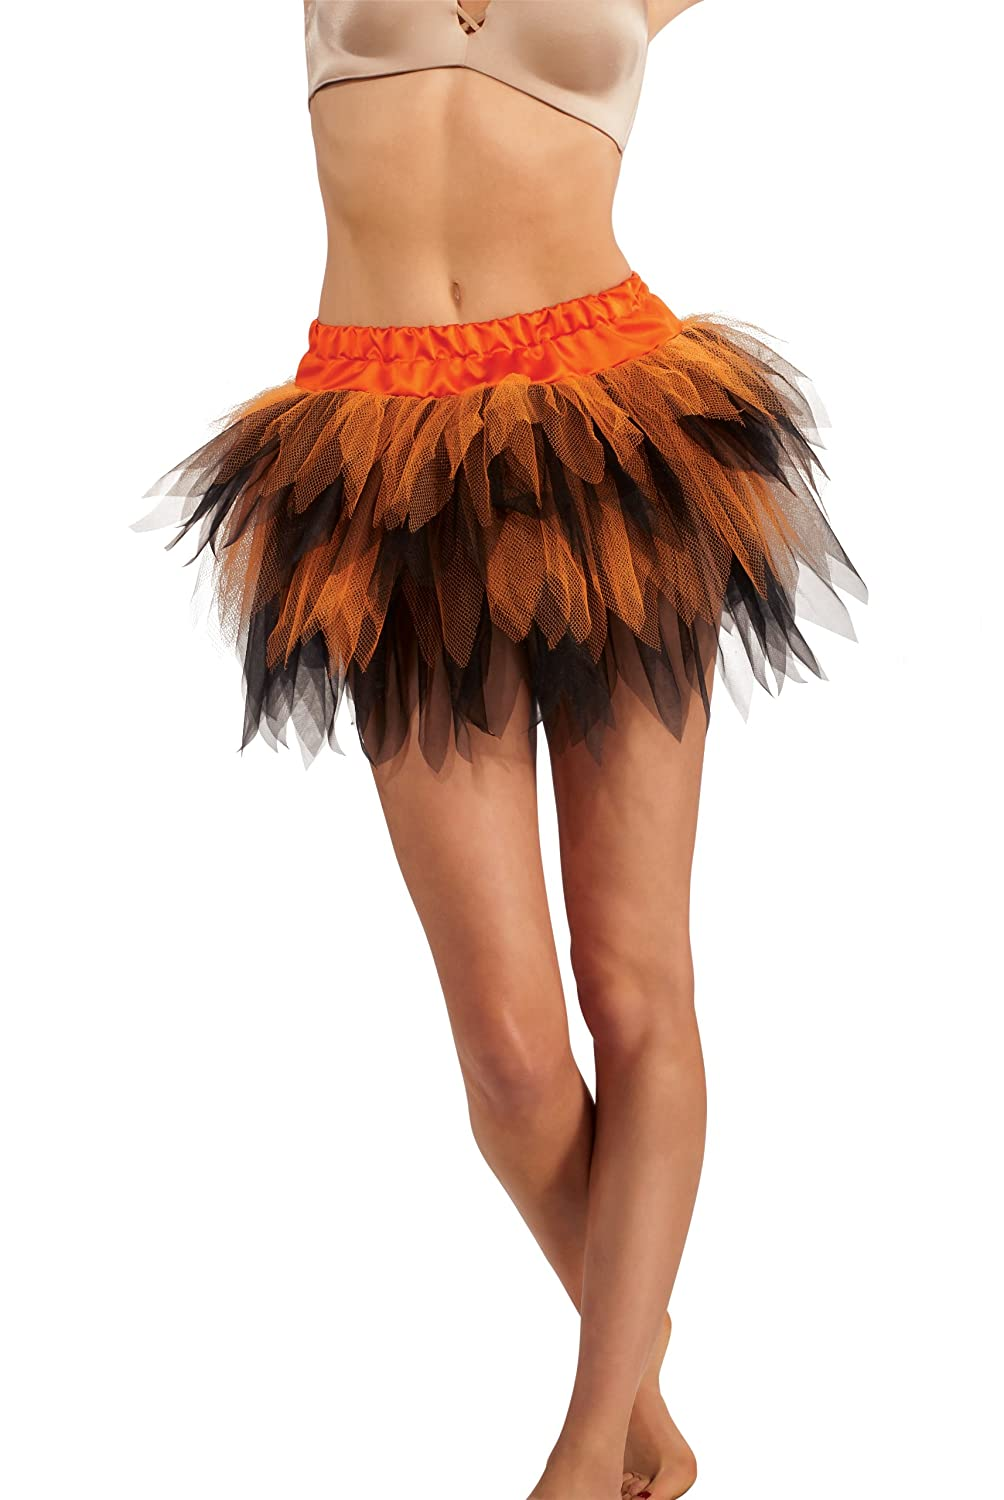 Secret Wishes Butterfly Costume Secret Wishes Butterfly Tutu Orange/Black One Size 30513